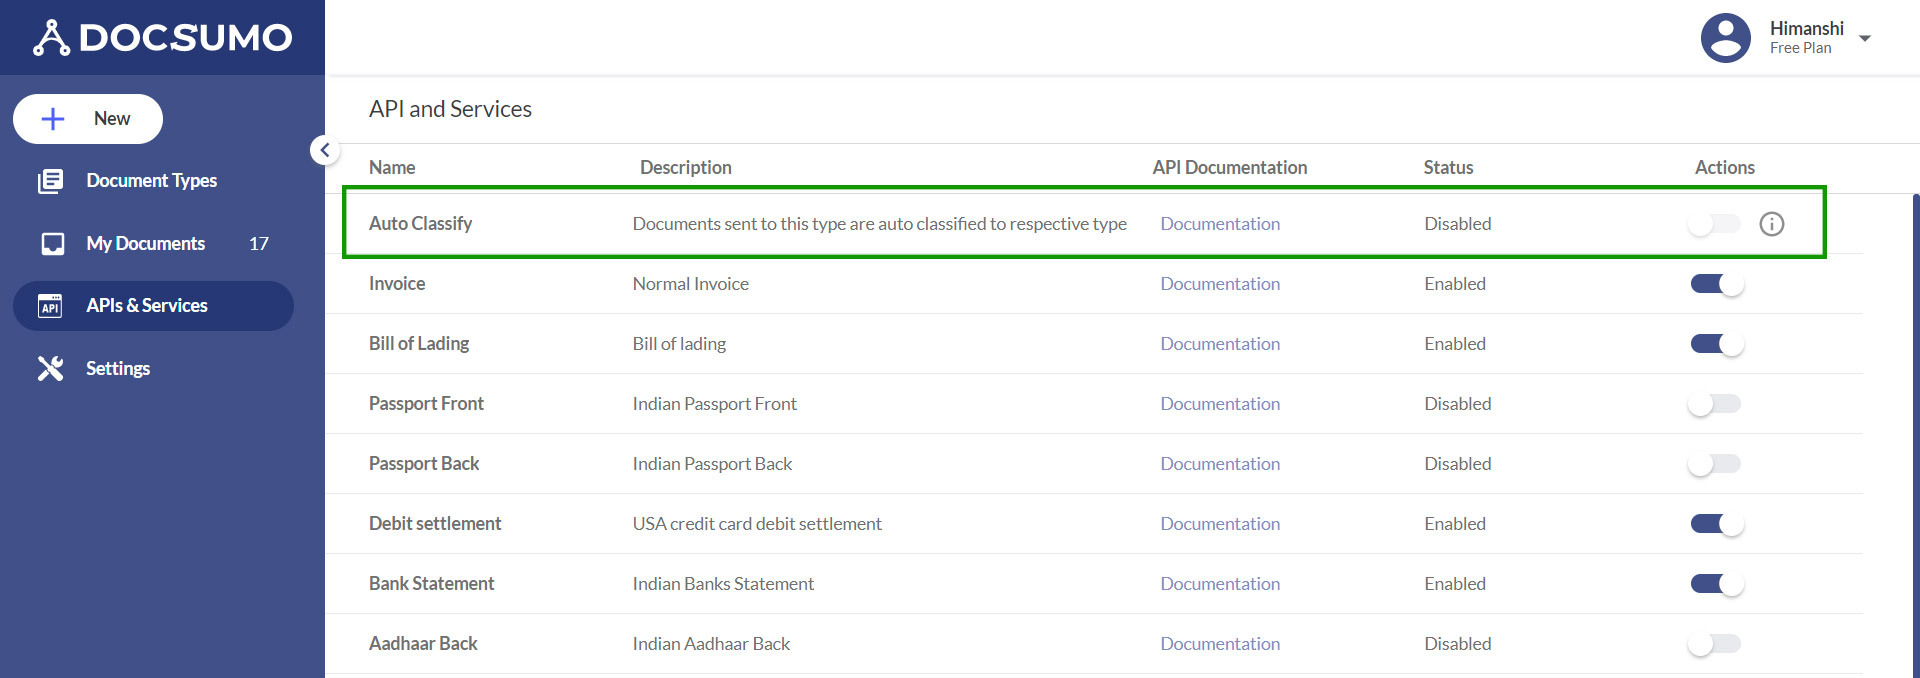 auto-classification of documents